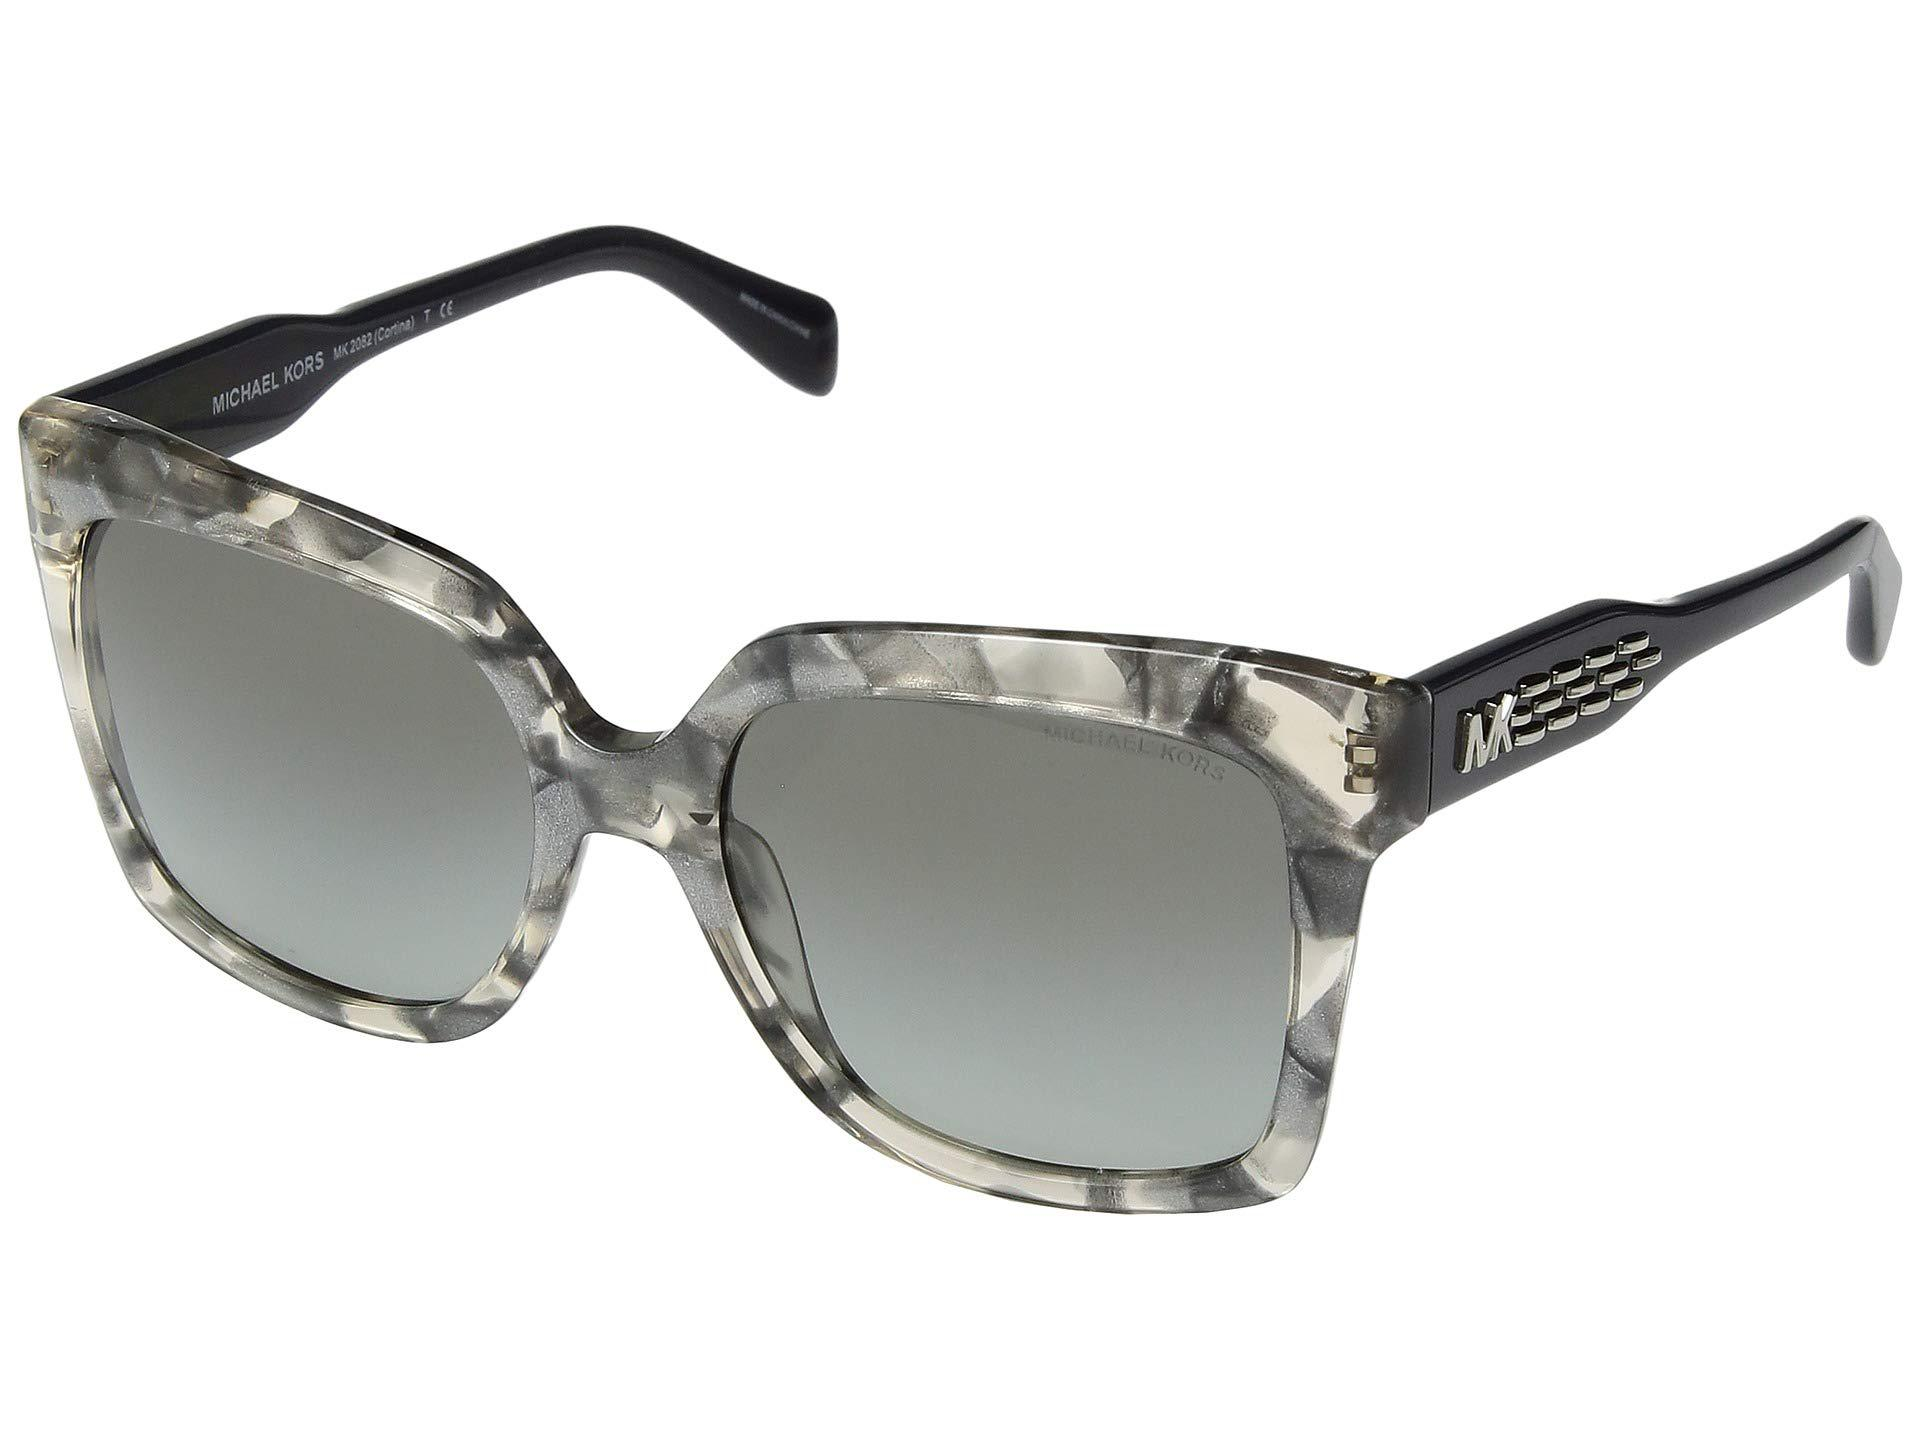 7d45d90f224fe Michael Kors. Women s Gray 0mk2082 55mm (dark Tortoise smoke Gradient) Fashion  Sunglasses